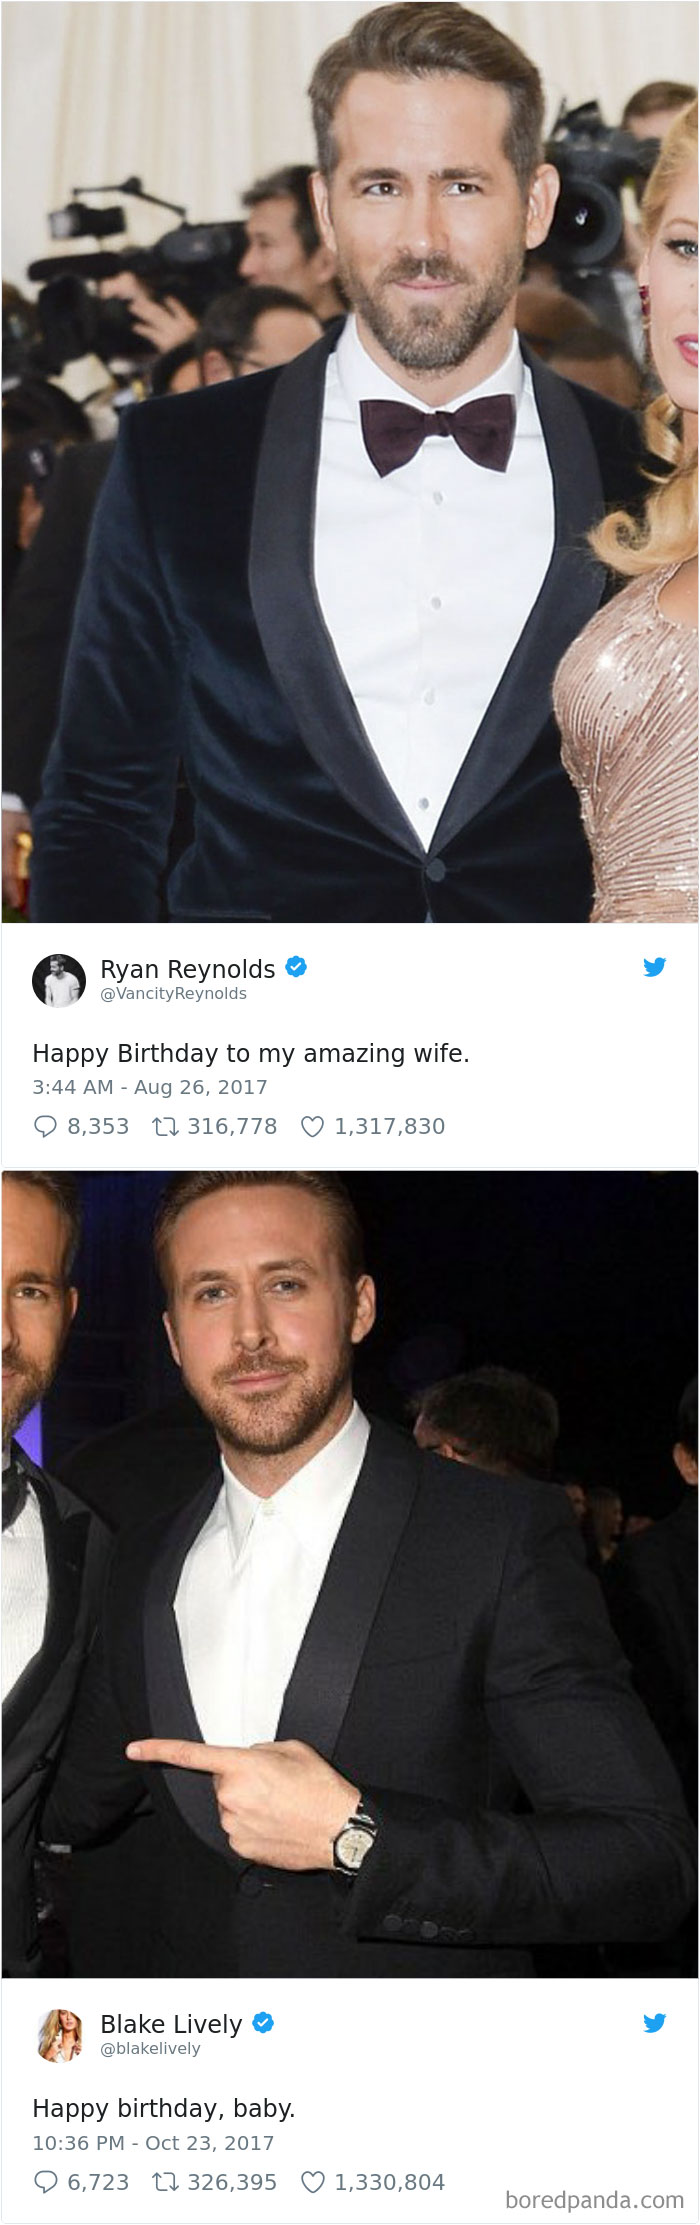 Ryan Reynolds Congratulated His Wife On Her 30th Birthday In A Way That Asked For Revenge And On The Actor's 41st Birthday, Blake Lively Came Back Swinging